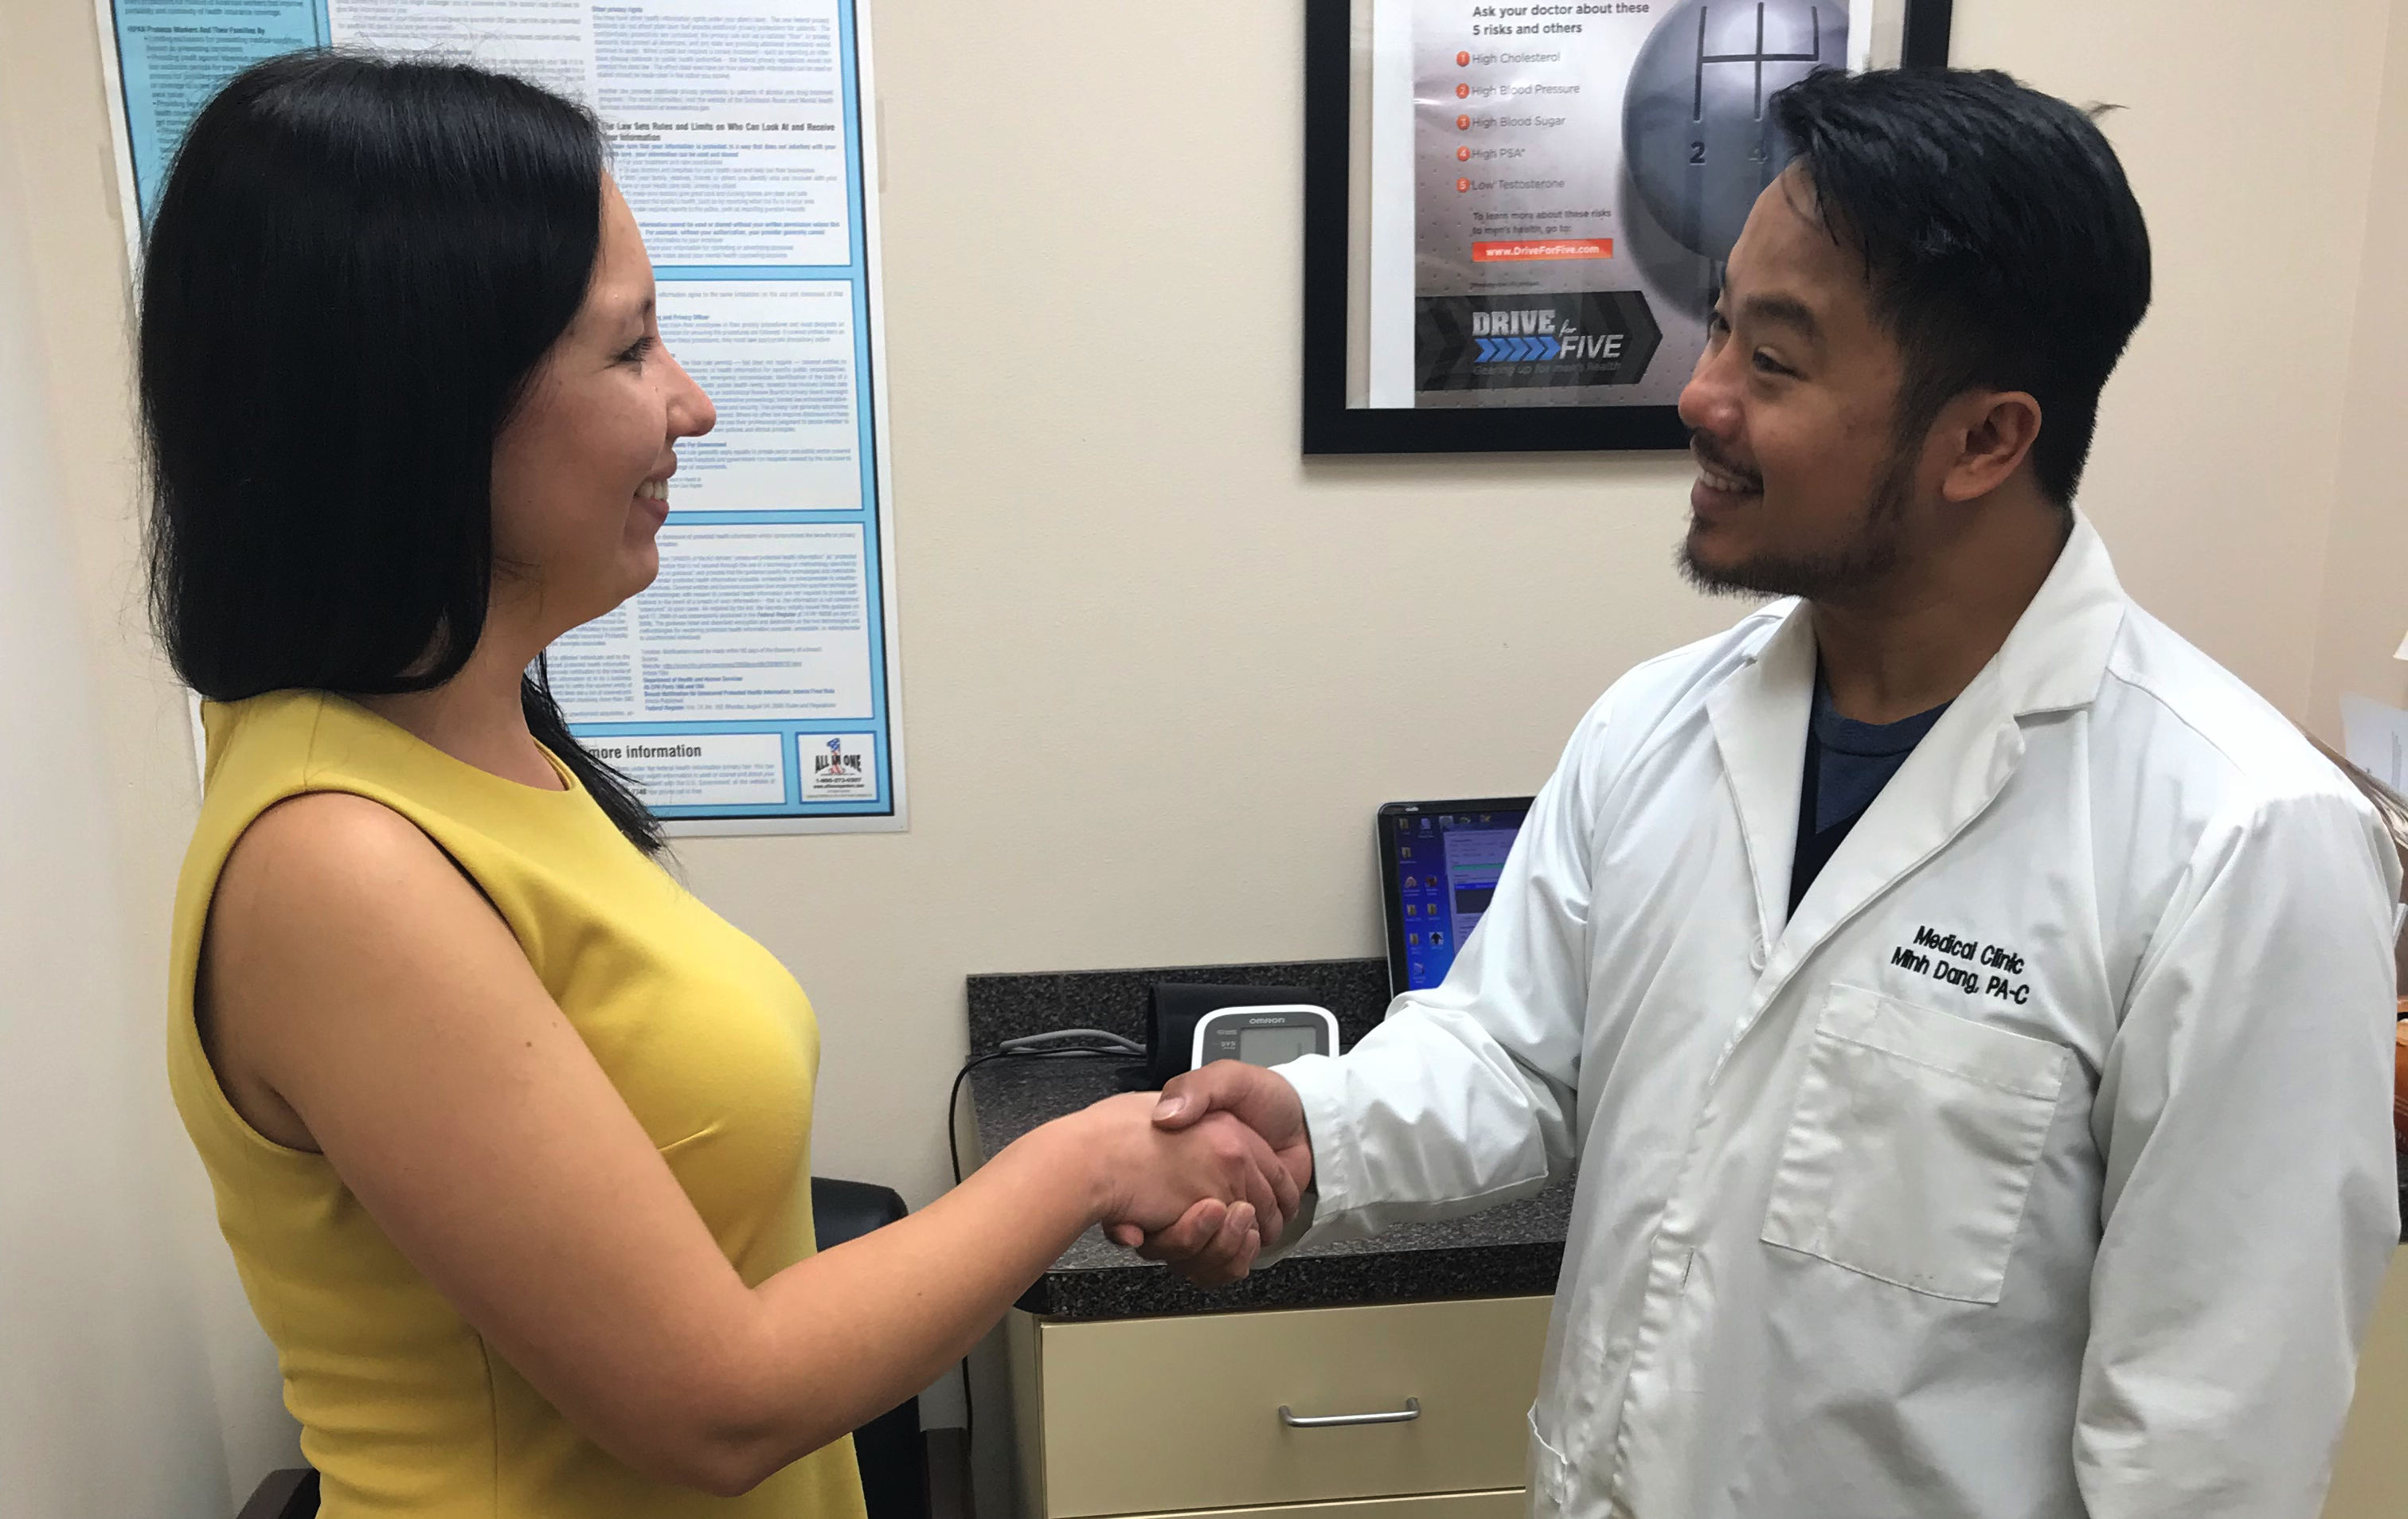 Minh Dang, PA is a board certified physician assistant in Orlando, Florida.